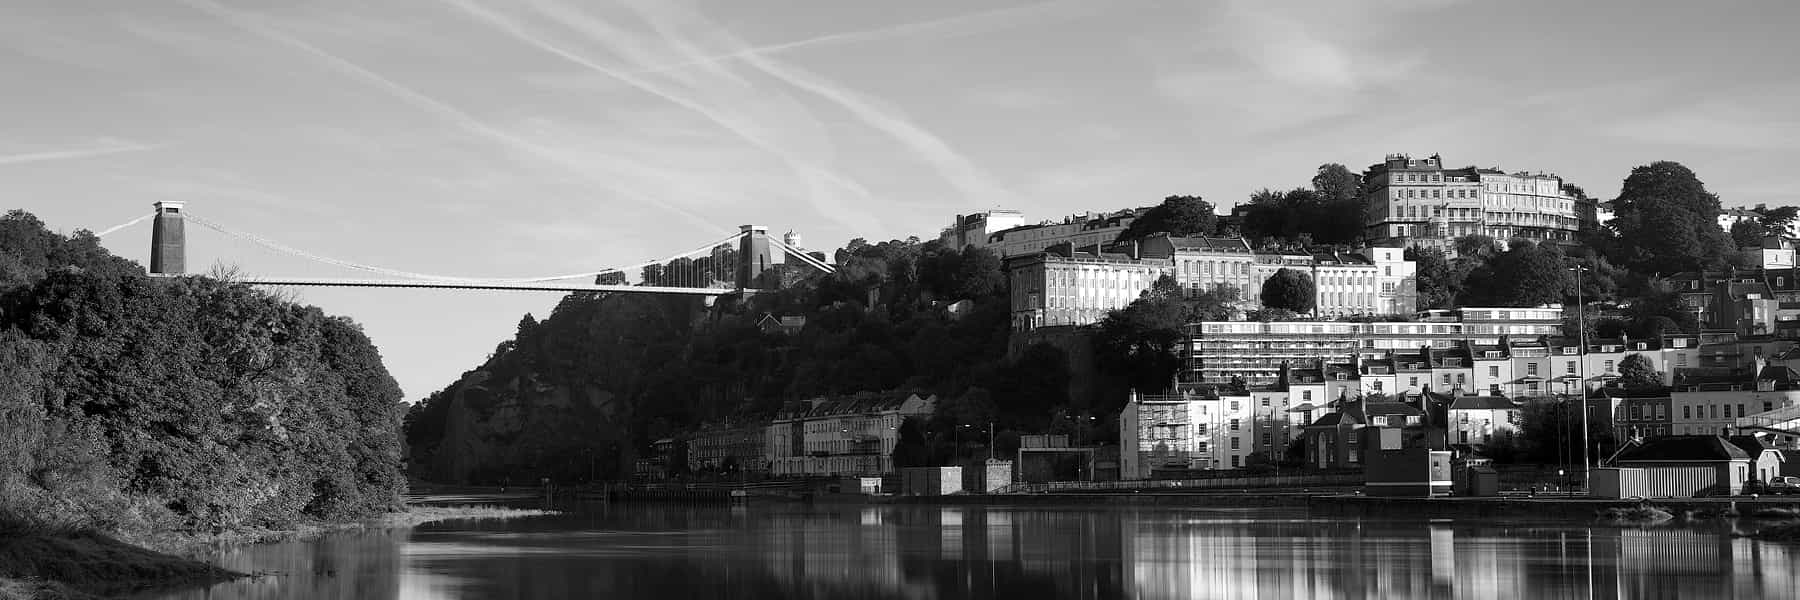 Clifton suspension bridge in black and white with views over the city and River Avon